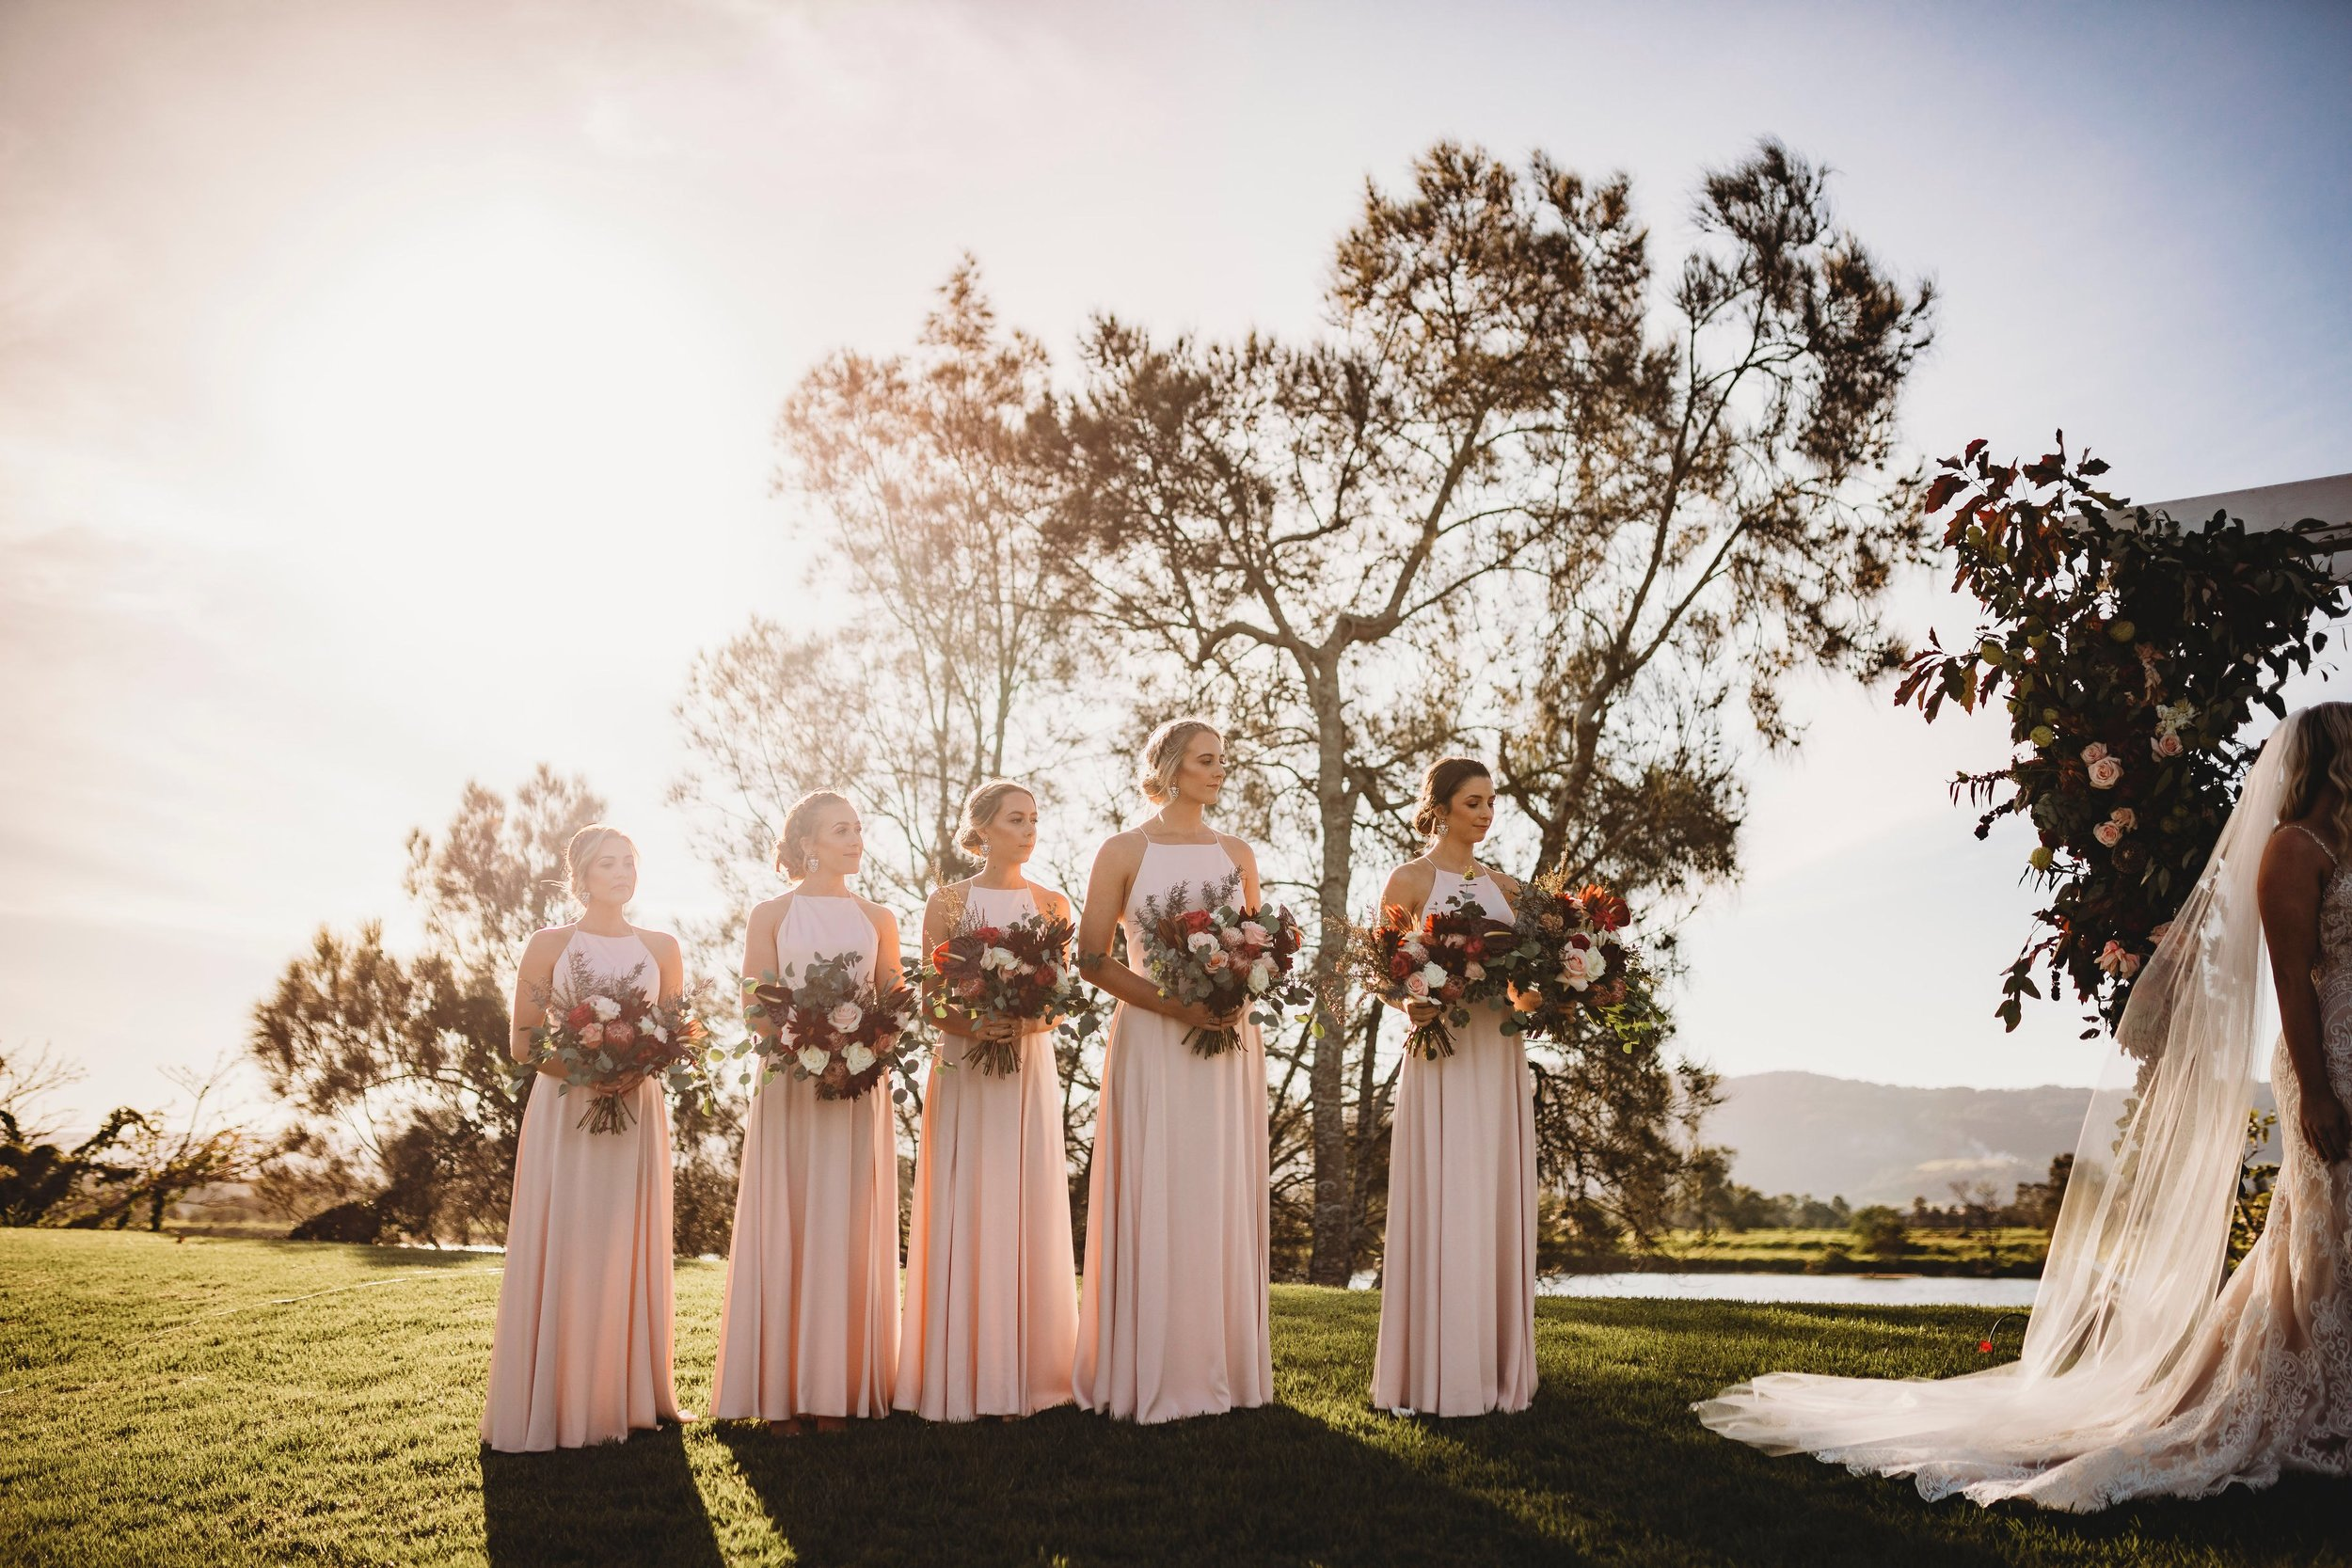 Dusty pink bridal party with native Australian flower bouquets